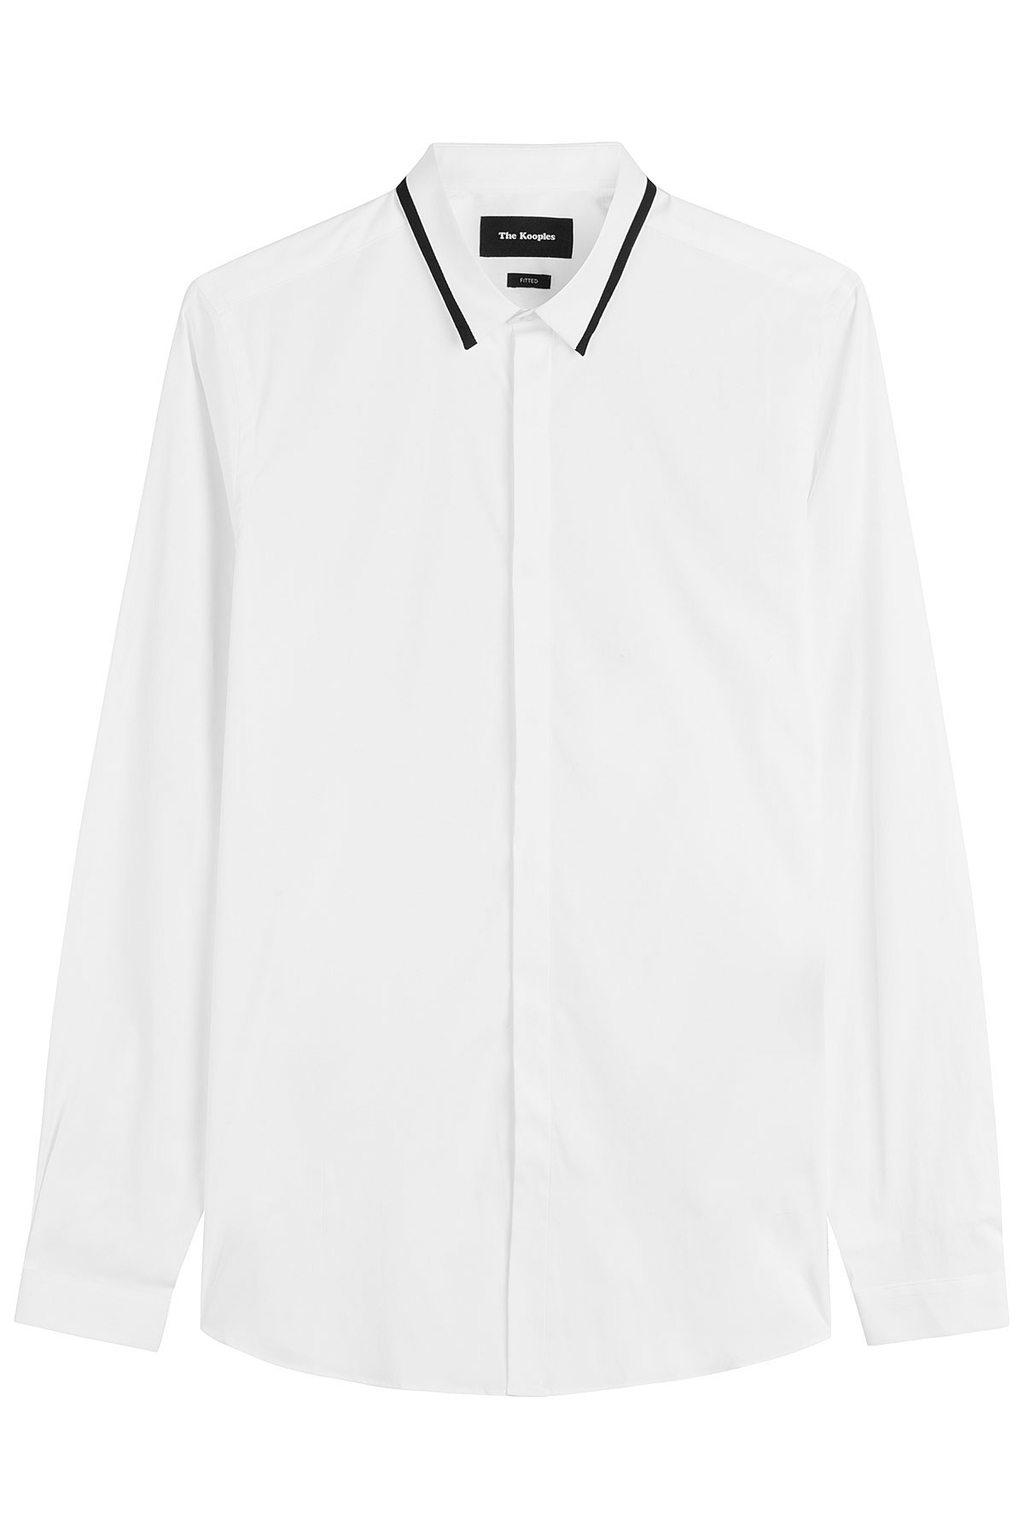 Cotton Shirt With Contrast Trim White - neckline: shirt collar/peter pan/zip with opening; pattern: plain; style: shirt; predominant colour: white; secondary colour: black; occasions: work; length: standard; fibres: cotton - 100%; fit: body skimming; sleeve length: long sleeve; sleeve style: standard; pattern type: fabric; texture group: woven light midweight; season: a/w 2016